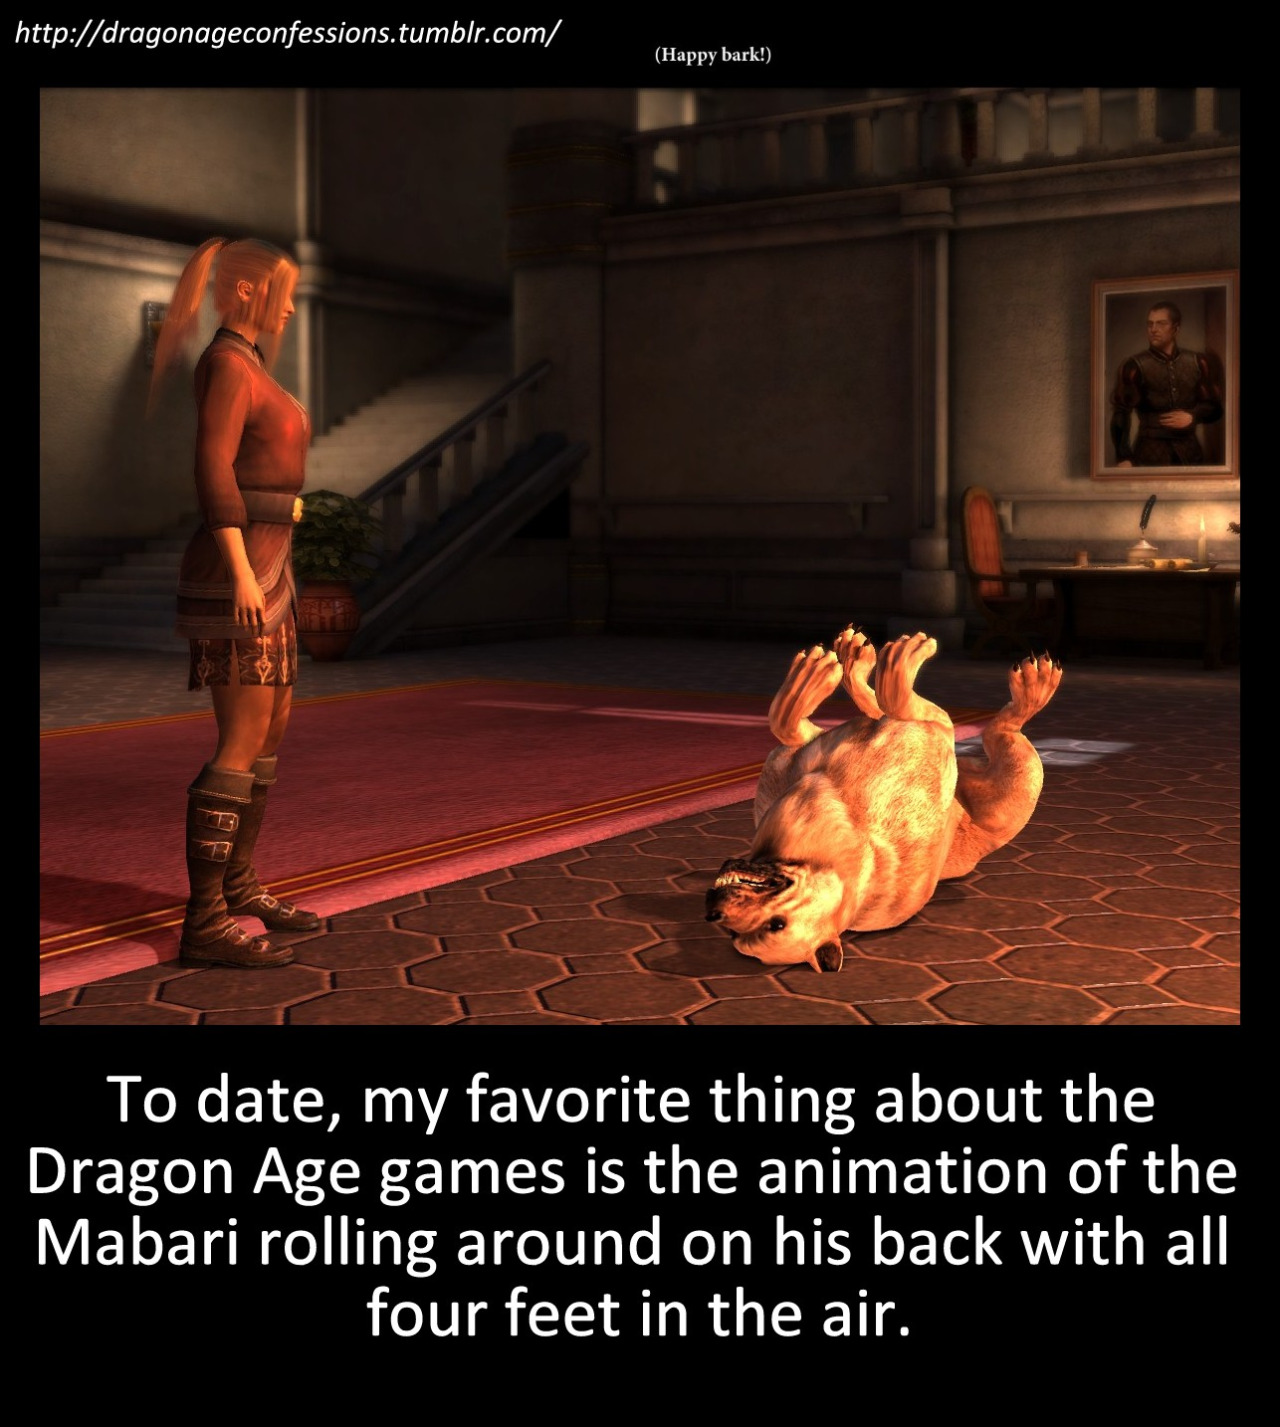 dragonageconfessions :      Confession:   To date, my favorite thing about the Dragon Age games is the animation of the Mabari rolling around on his back with all four feet in the air.      That won't work on me. I'm a cat person.